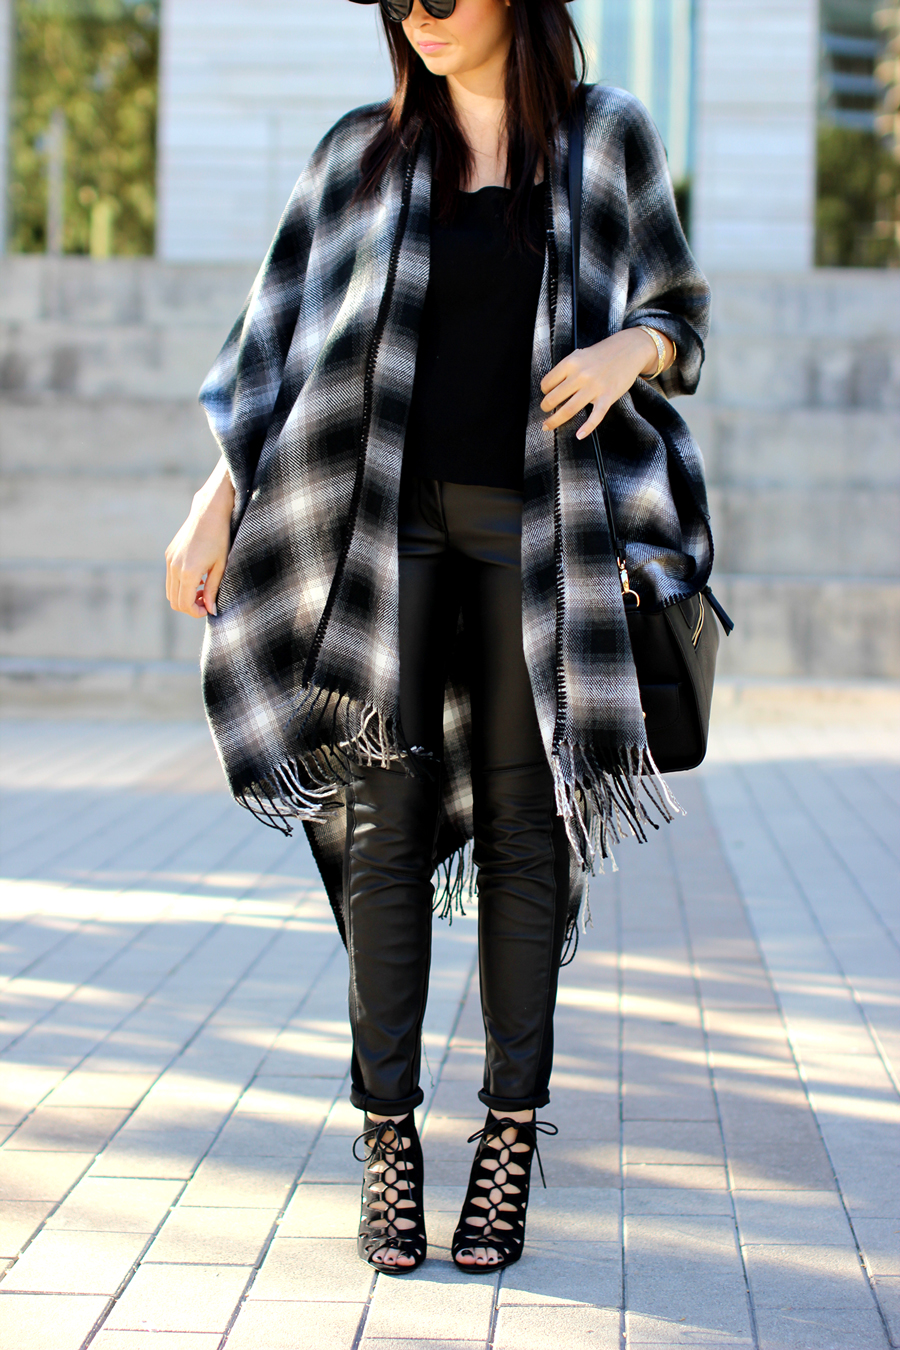 FIXIN-TO-THRILL-OVERSIZED-SCARF-CHECK-LEATHER-BLACK-NOVEMBER-ATX-AUSTIN-STYLE-BLOG-FW15-TRENDY-CHIC-GLAM-TEXAS-4